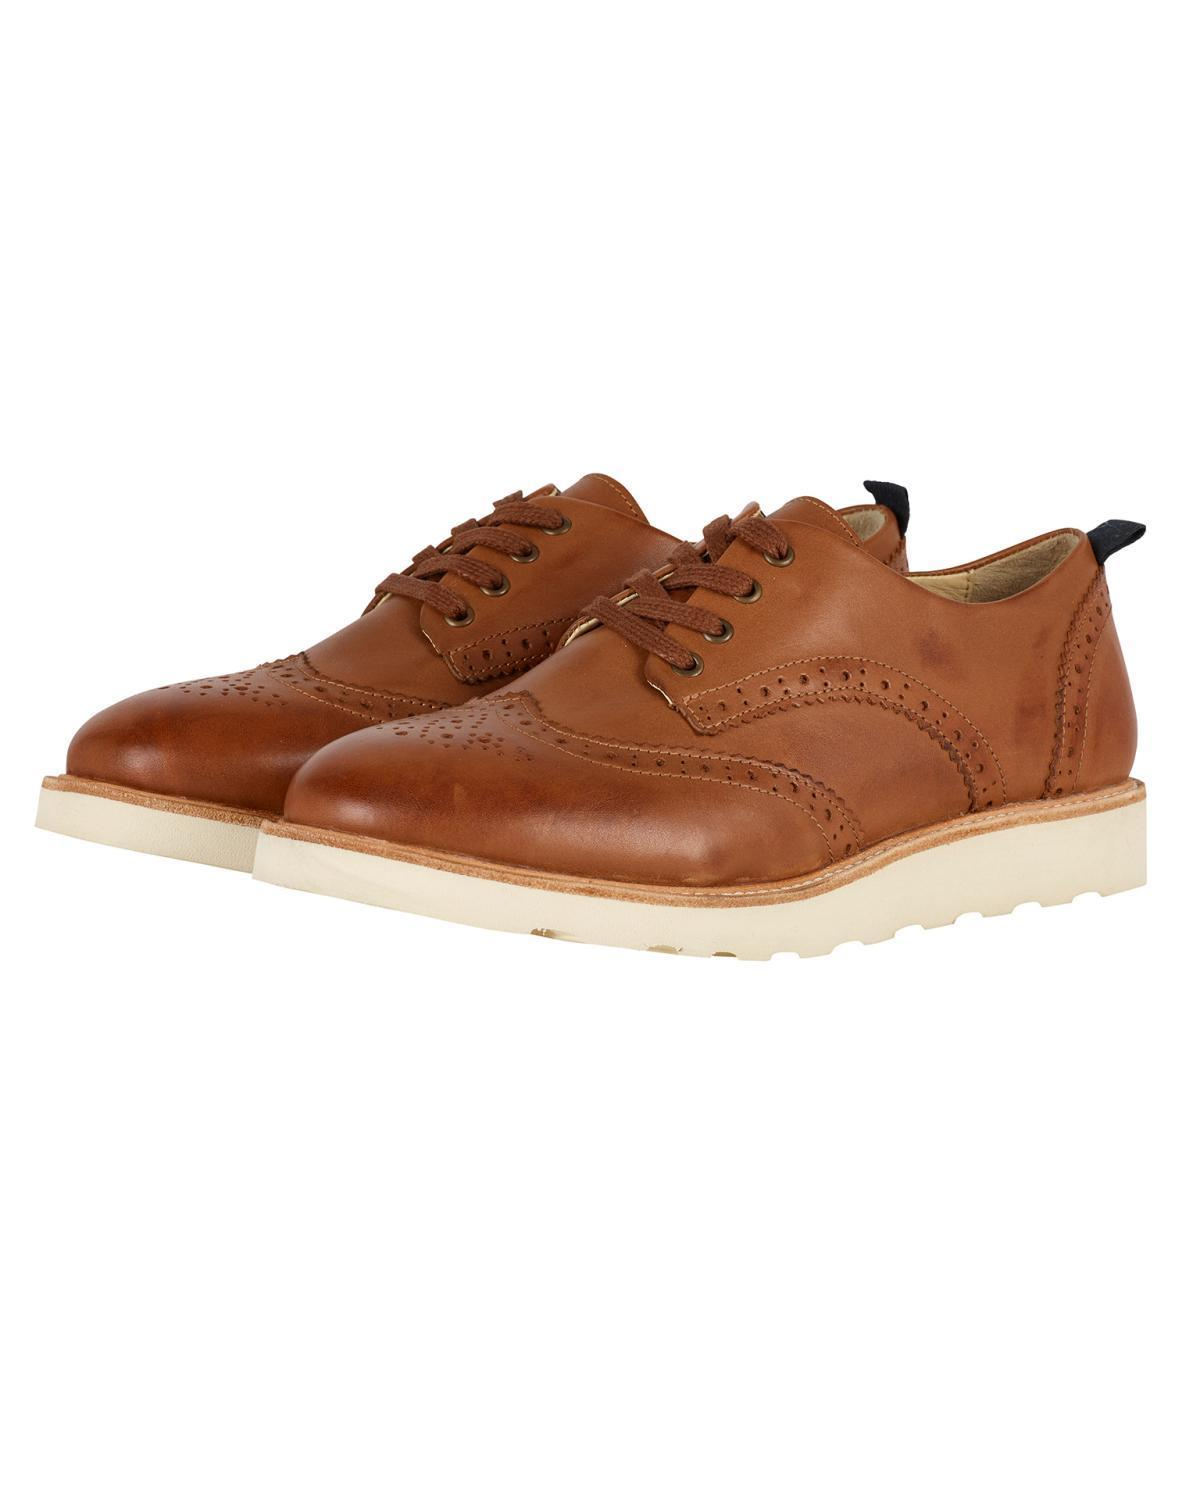 Little young soles boy 23 brando brogue shoe in tan